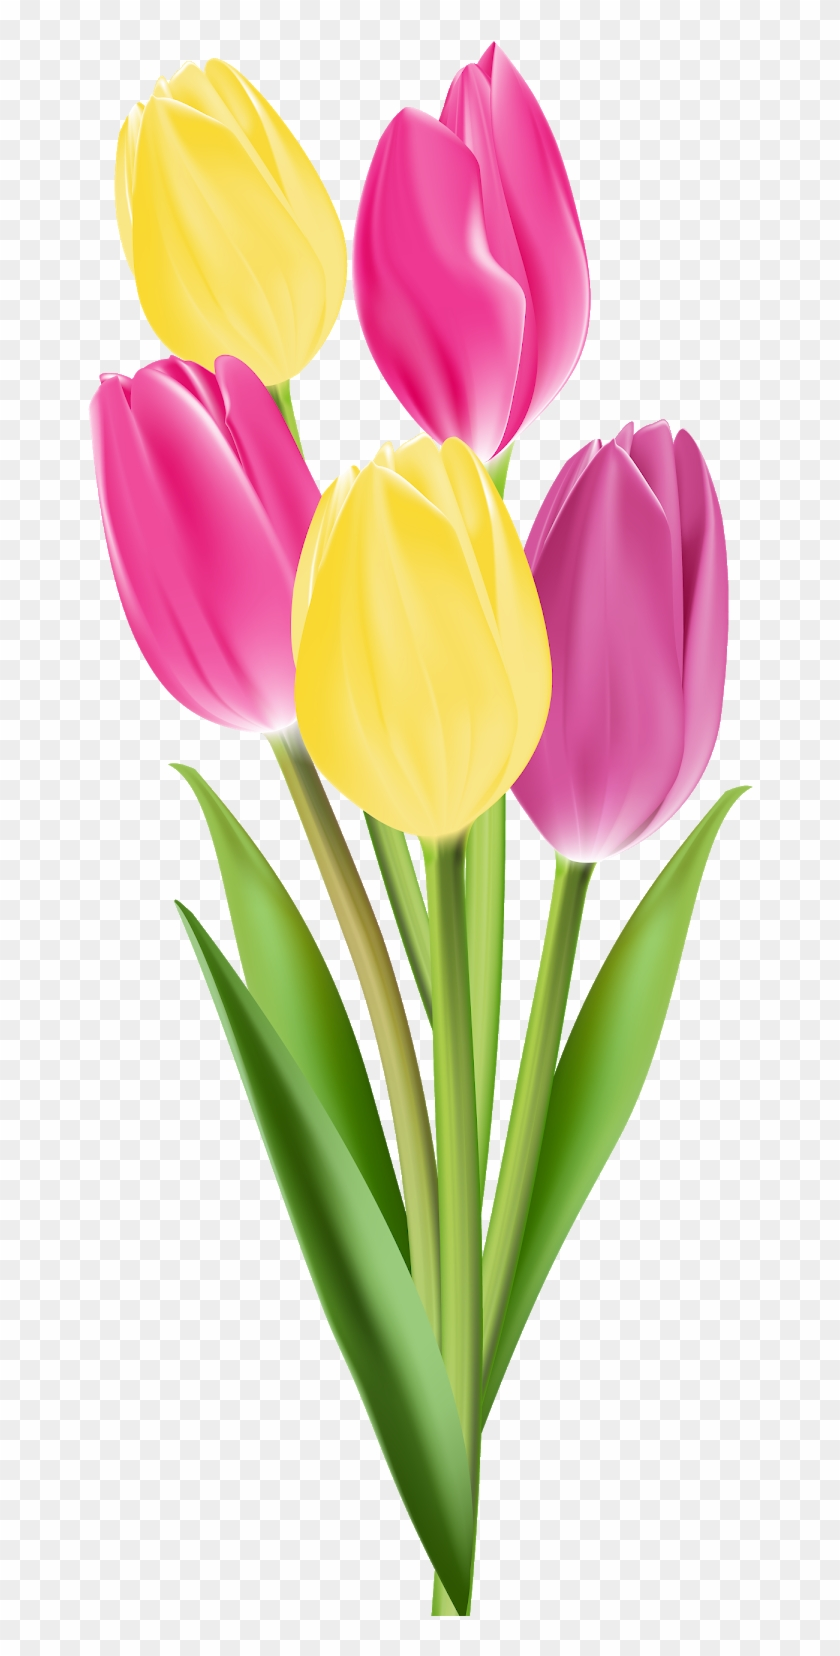 Bouqet of yellow tulips png clipart vector free picture transparent download Tulip Flower Bouquet Clip Art - Single Flowers Png, Transparent Png ... picture transparent download